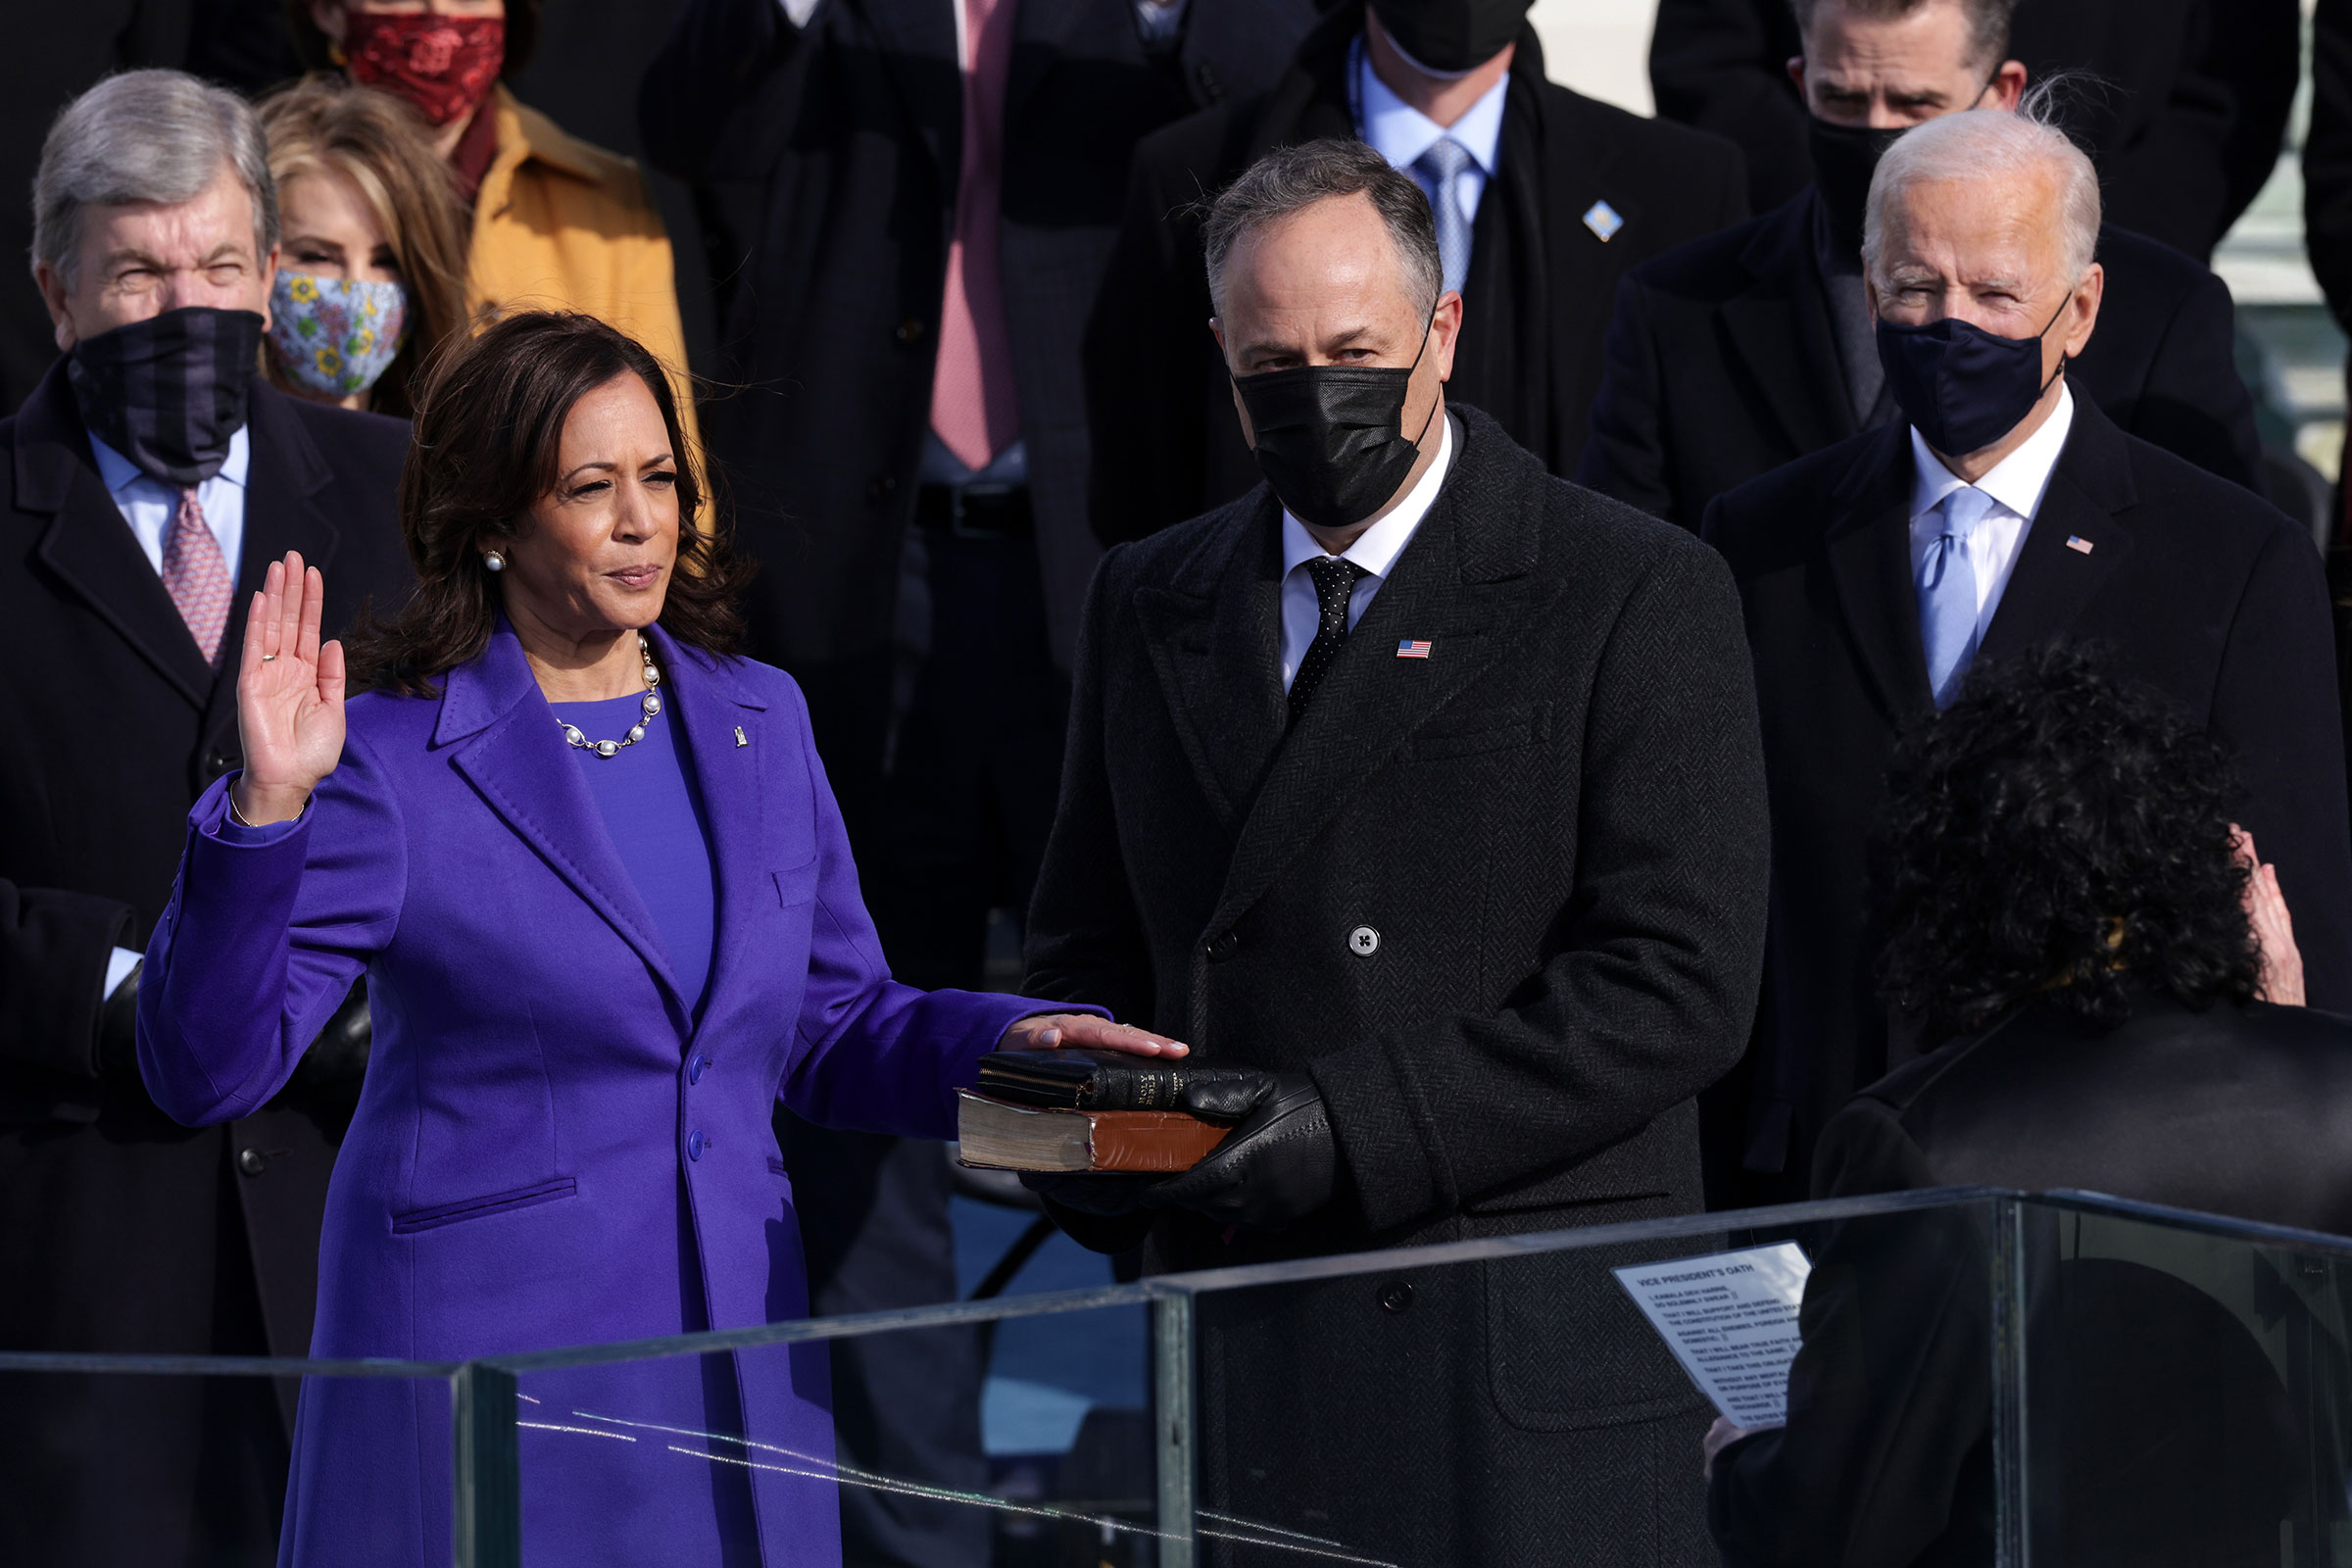 Kamala Harris is sworn in as Vice President of the United States as her husband Doug Emhoff looks on, in Washington on Jan. 20, 2021.